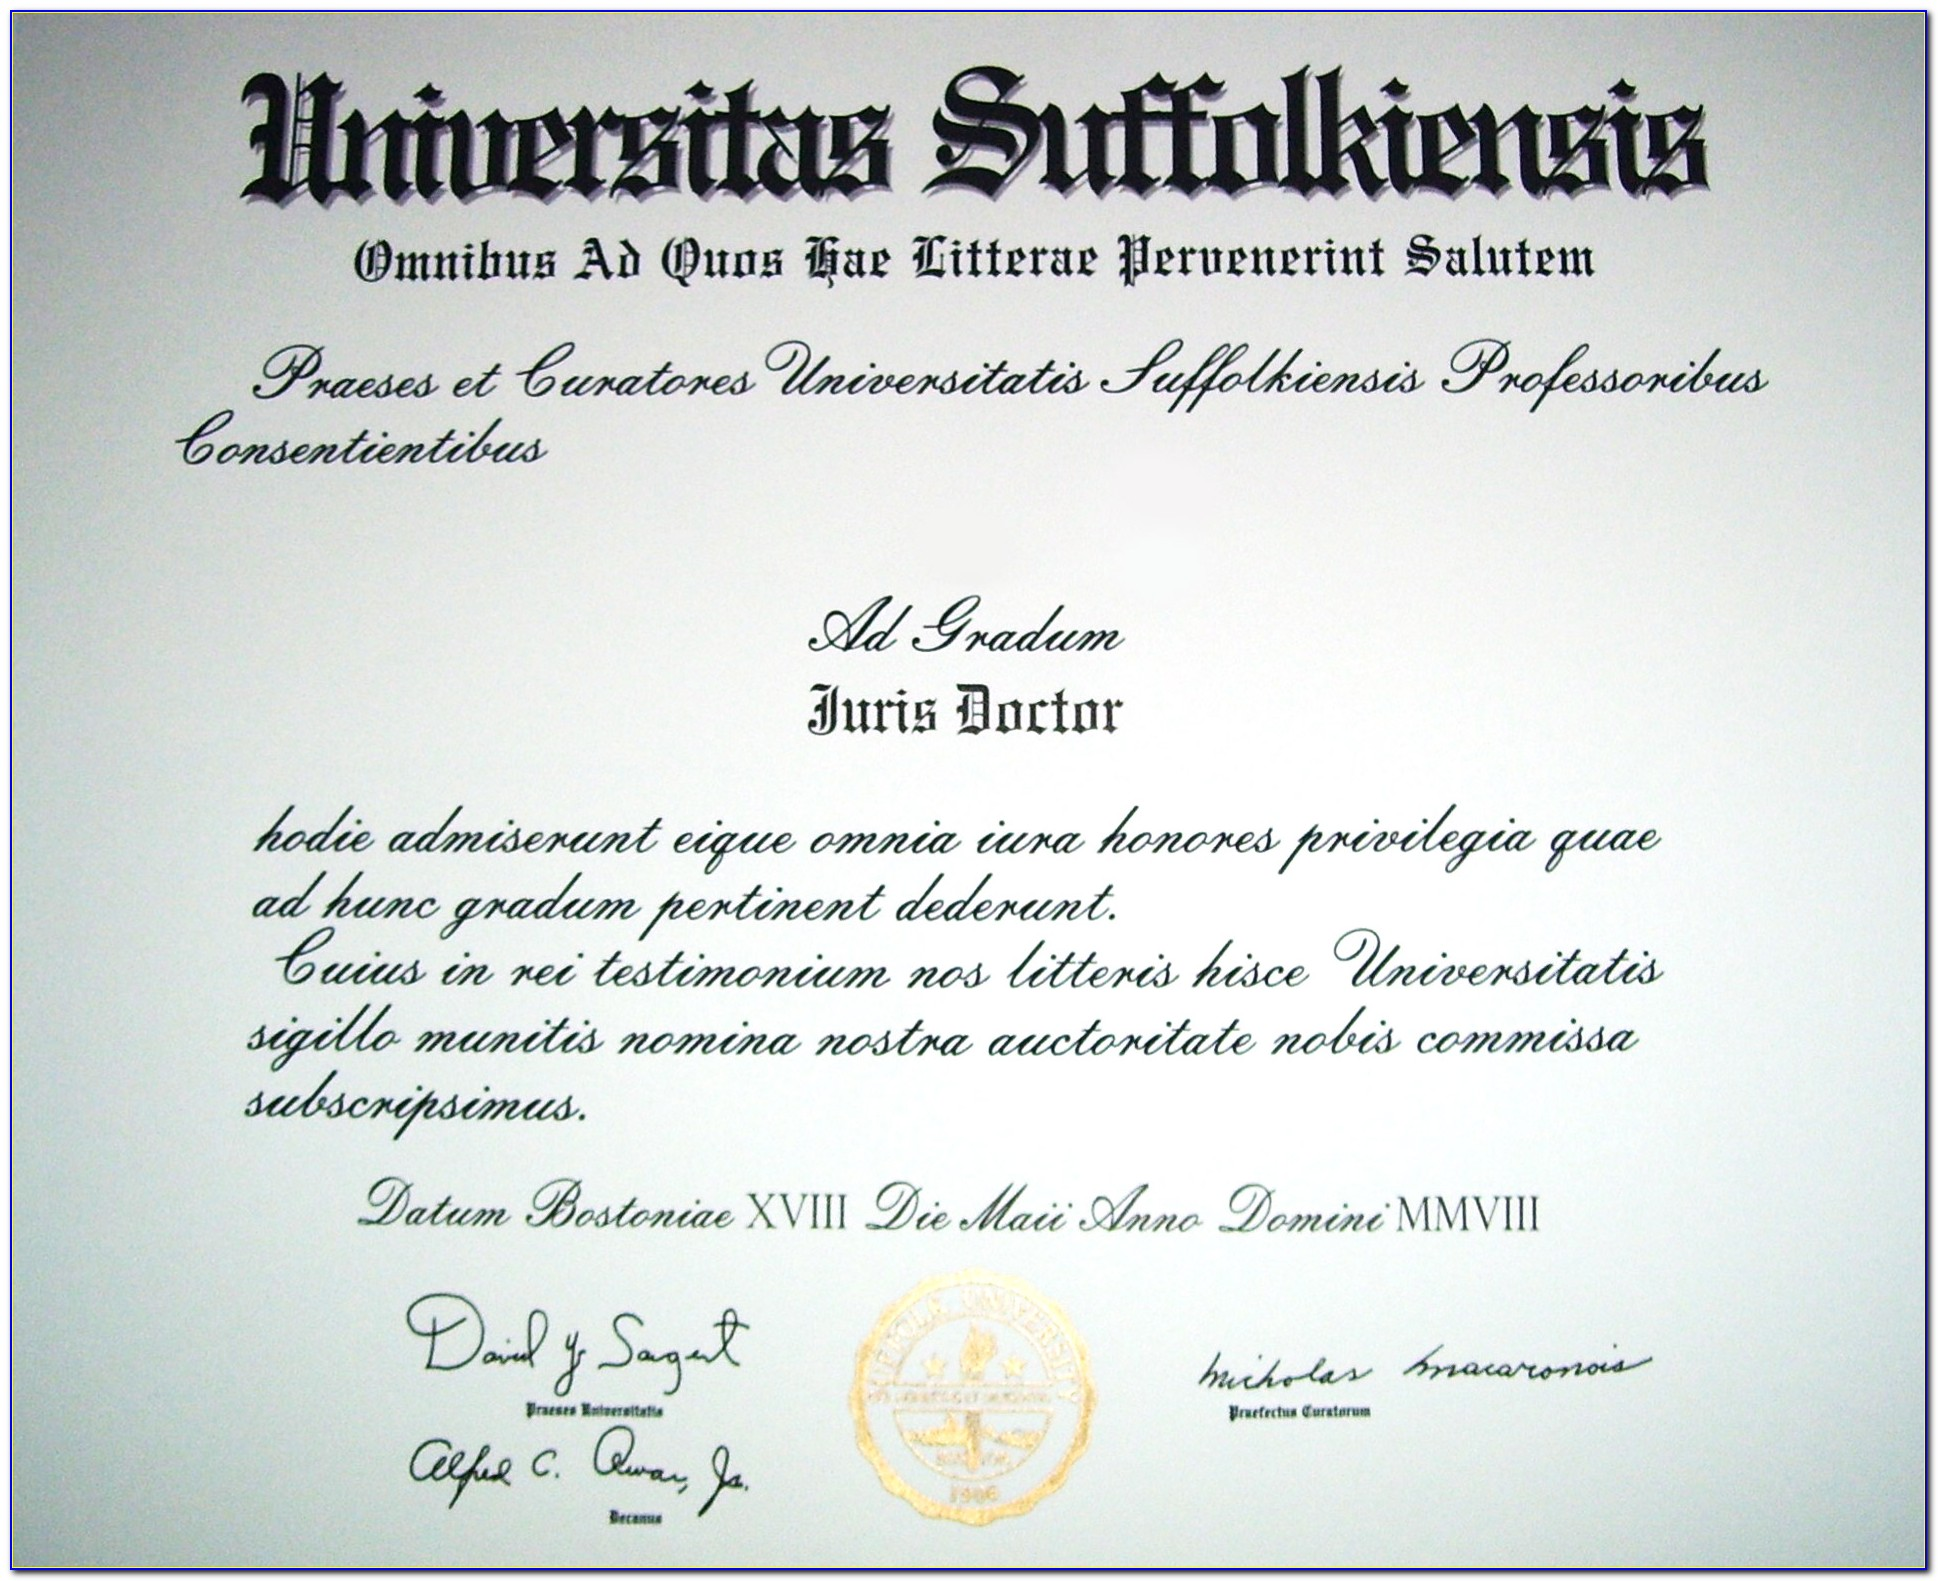 What Is A Certificate In College Mean